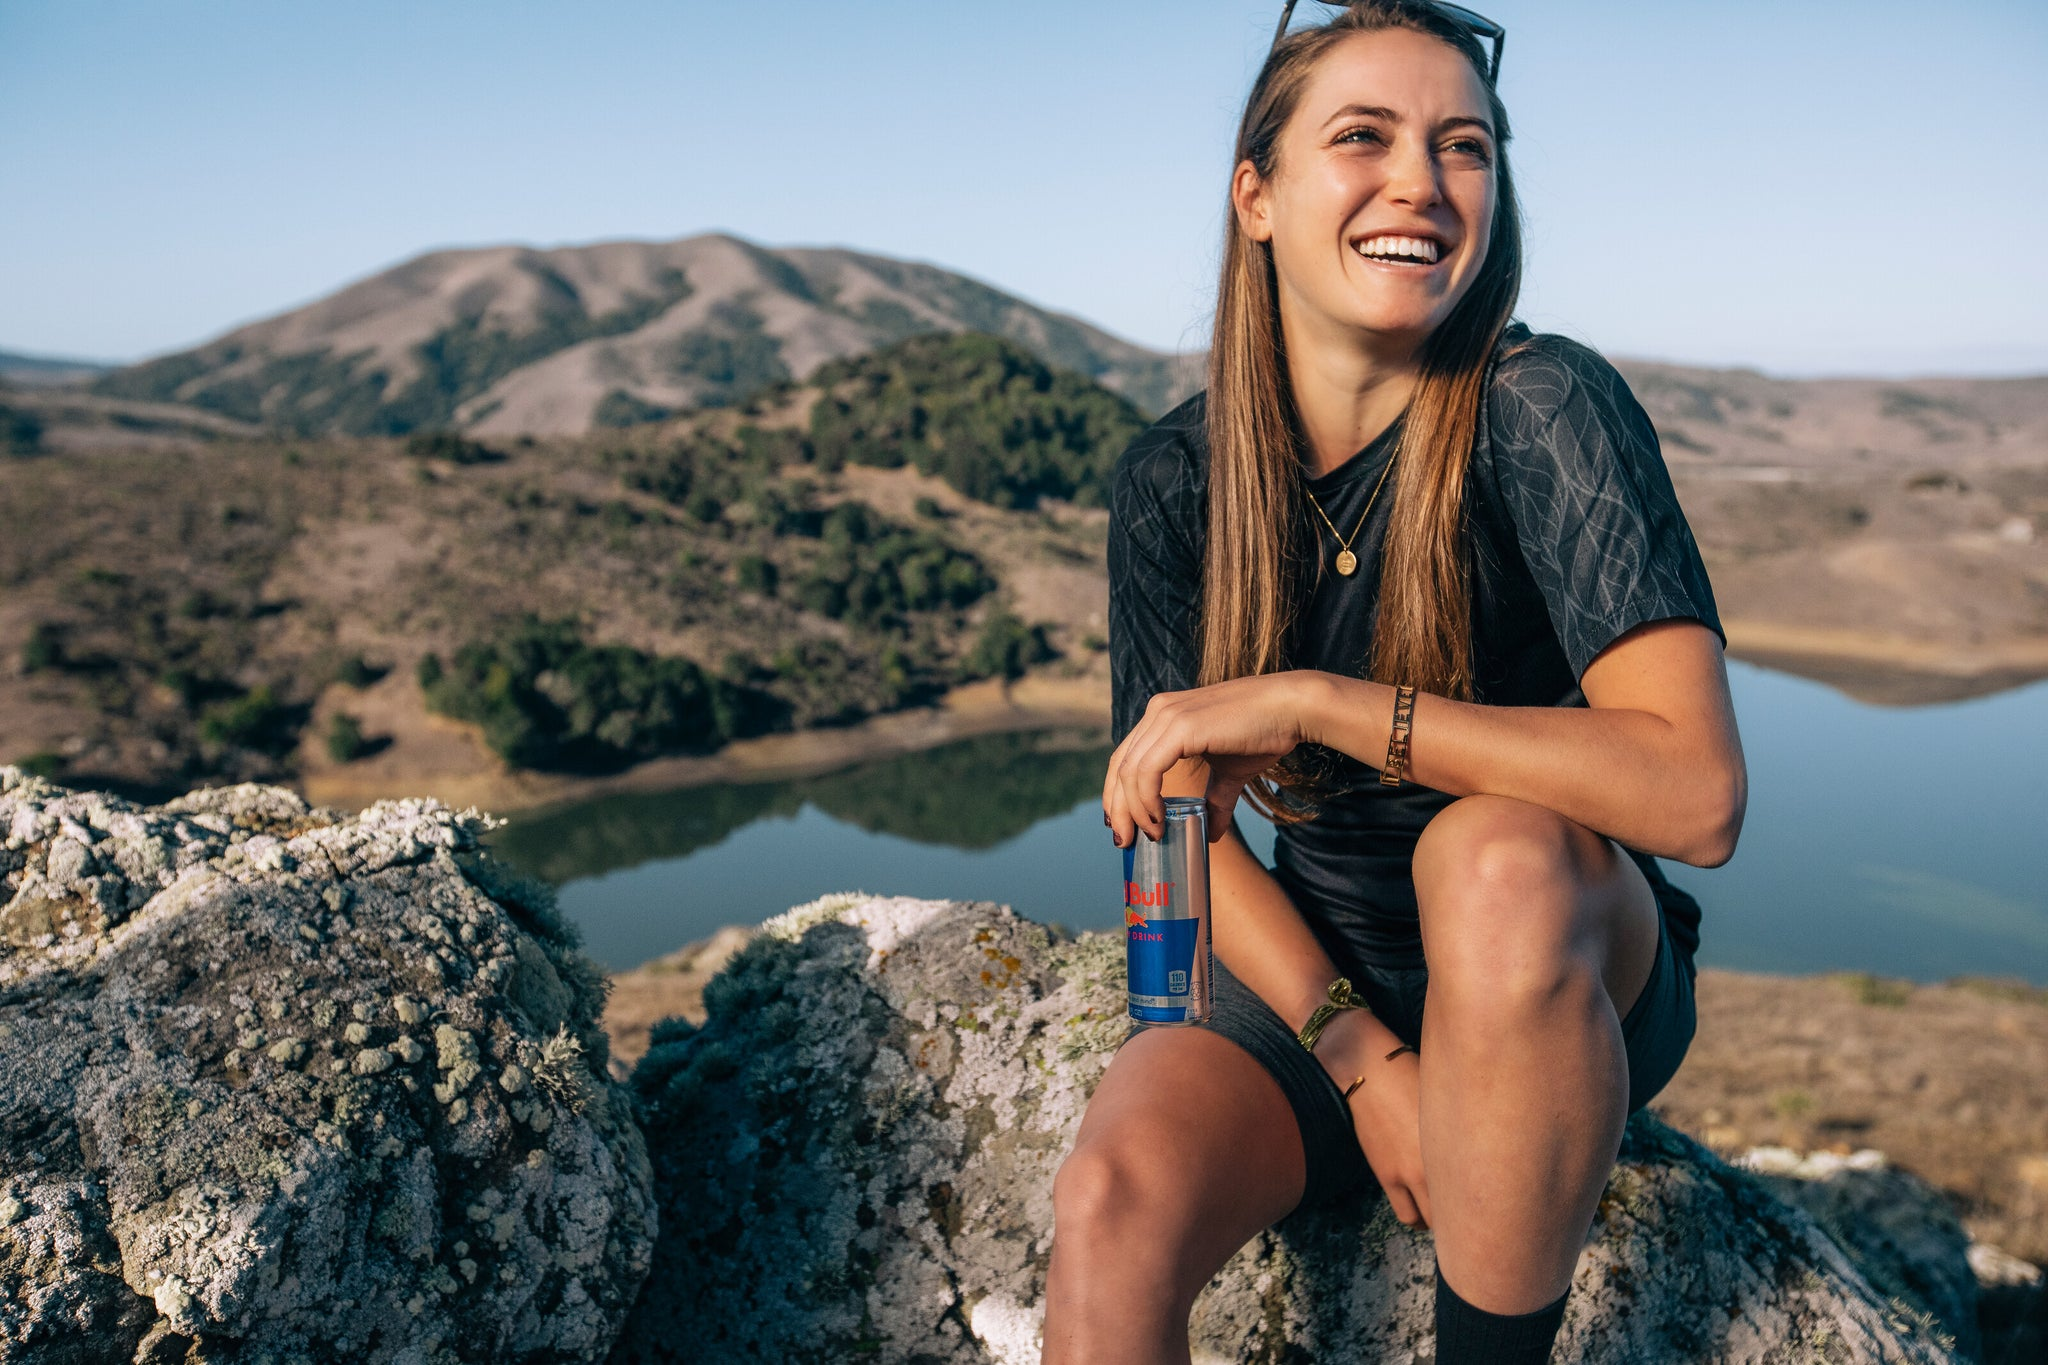 Kate Courtney chilling on a rock